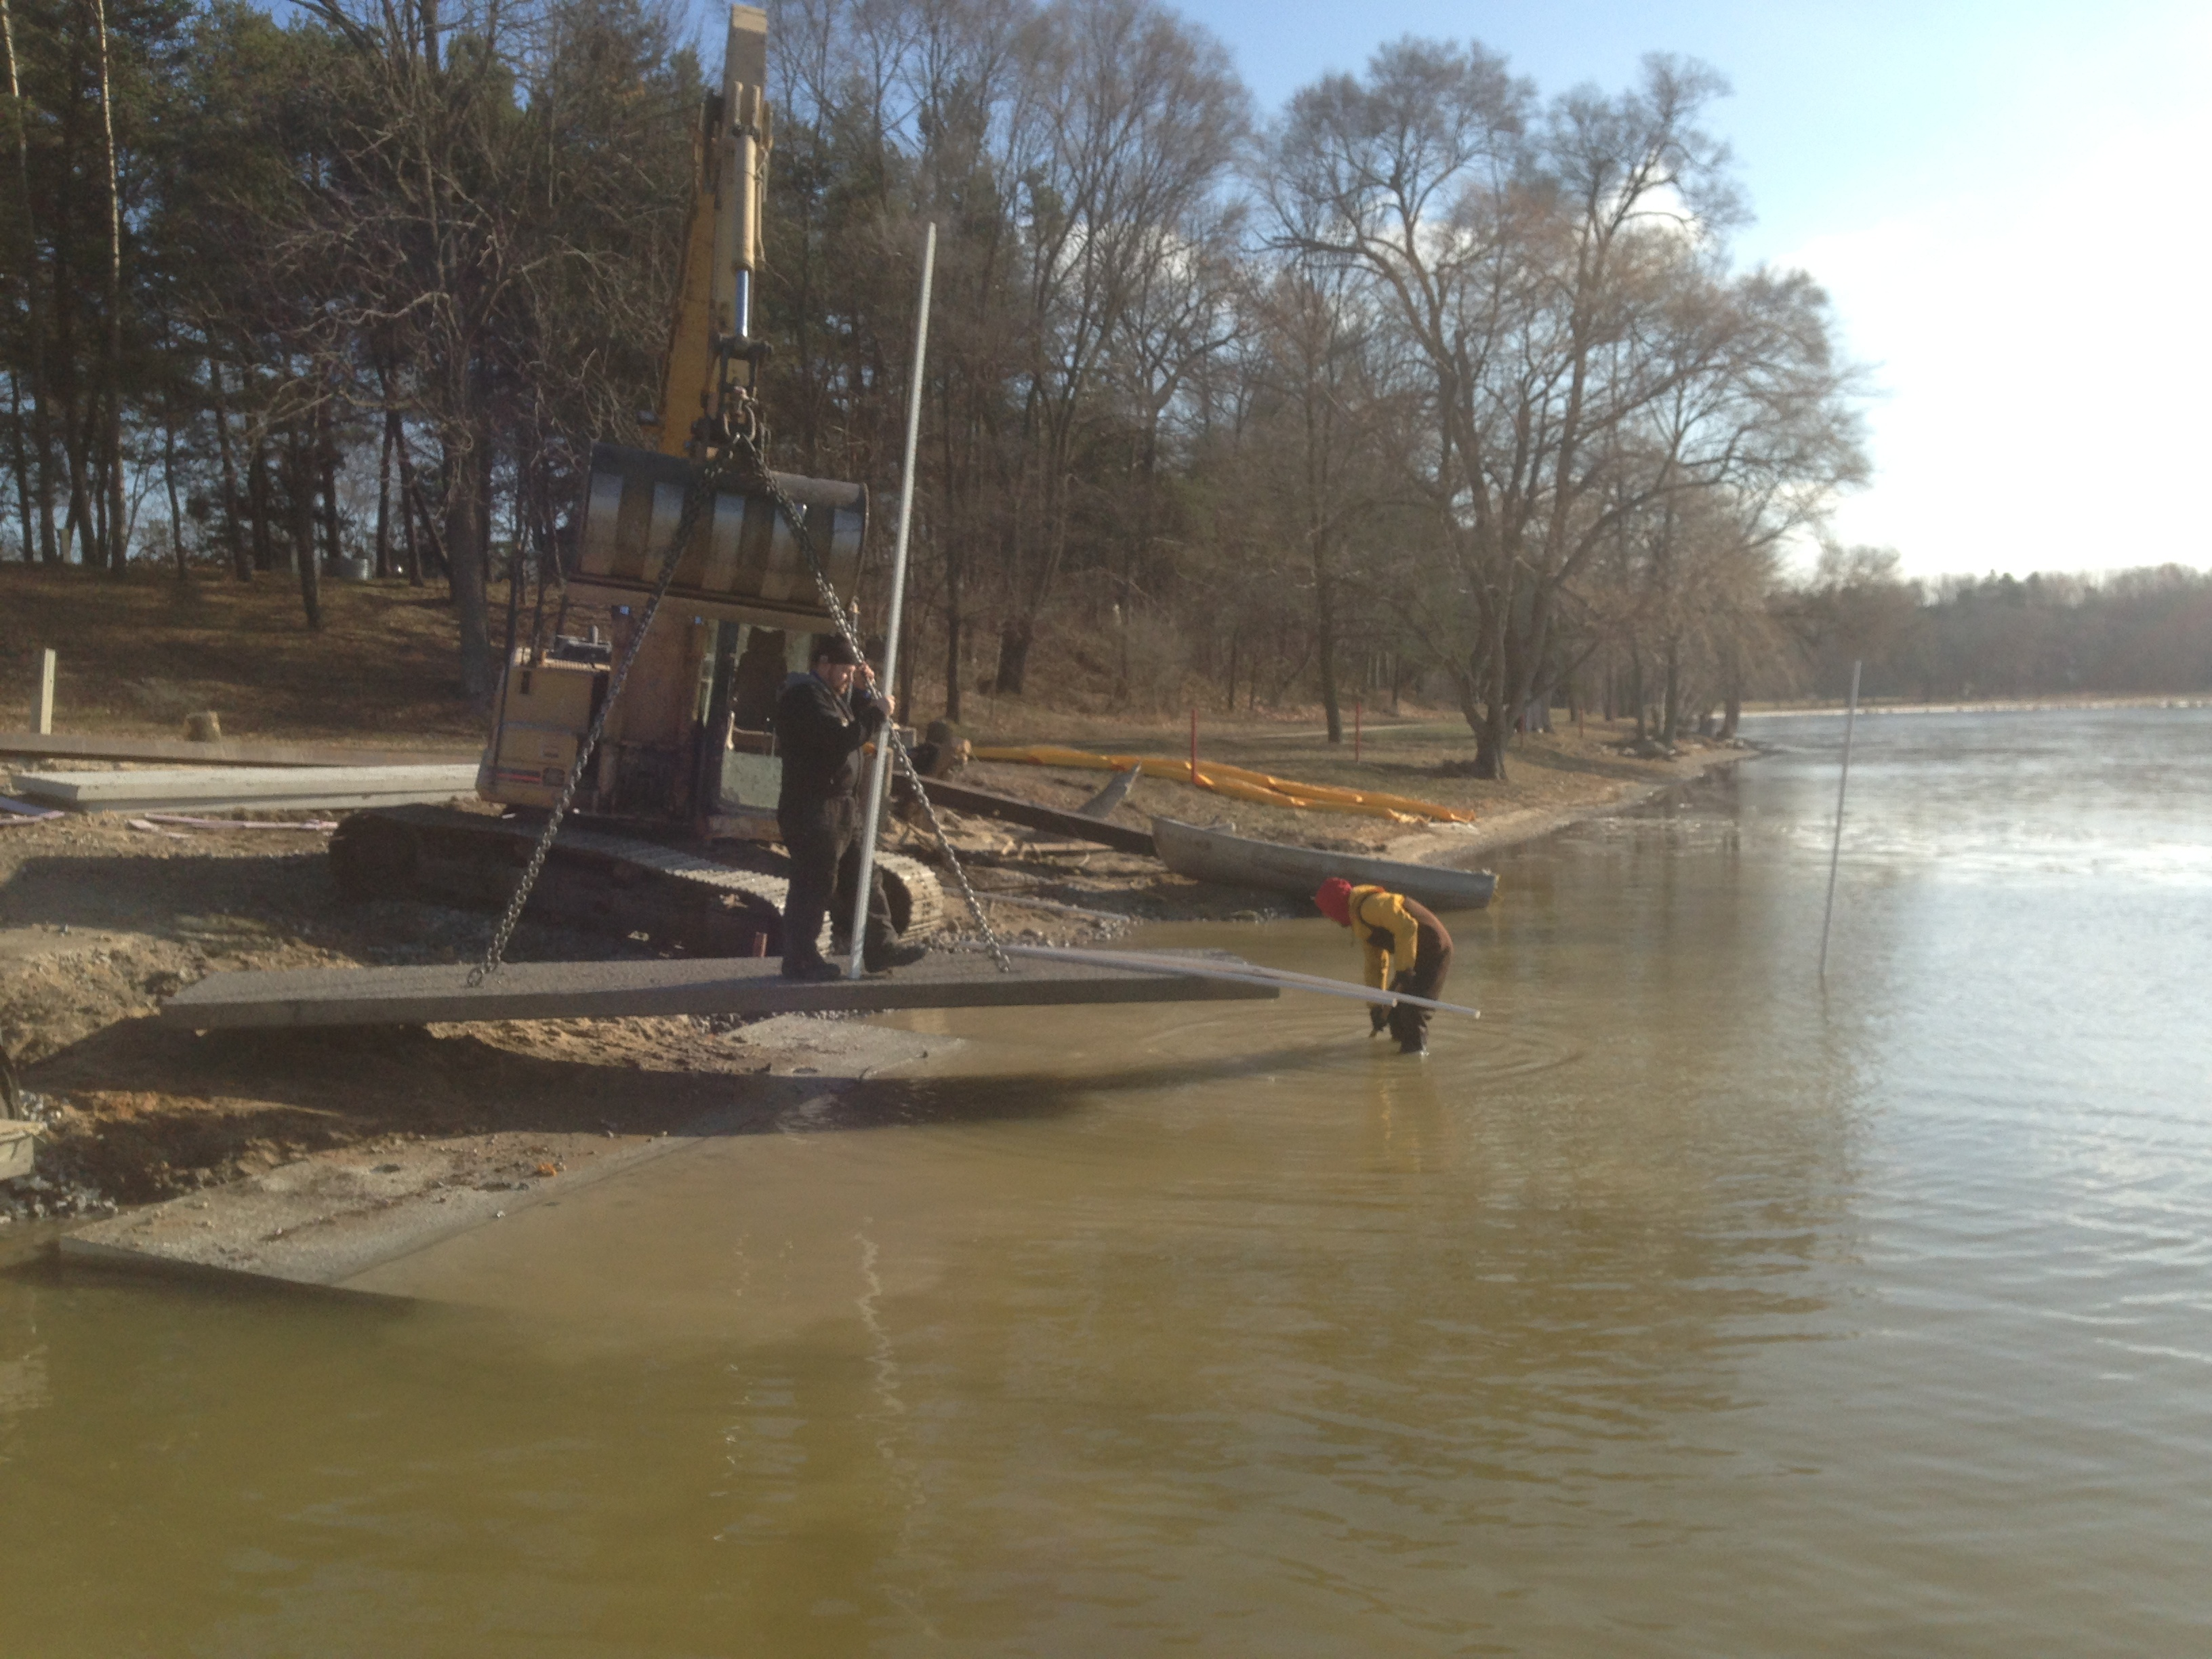 Boat_launch_installation_Michigan_Weidman_Michigan_71.jpg